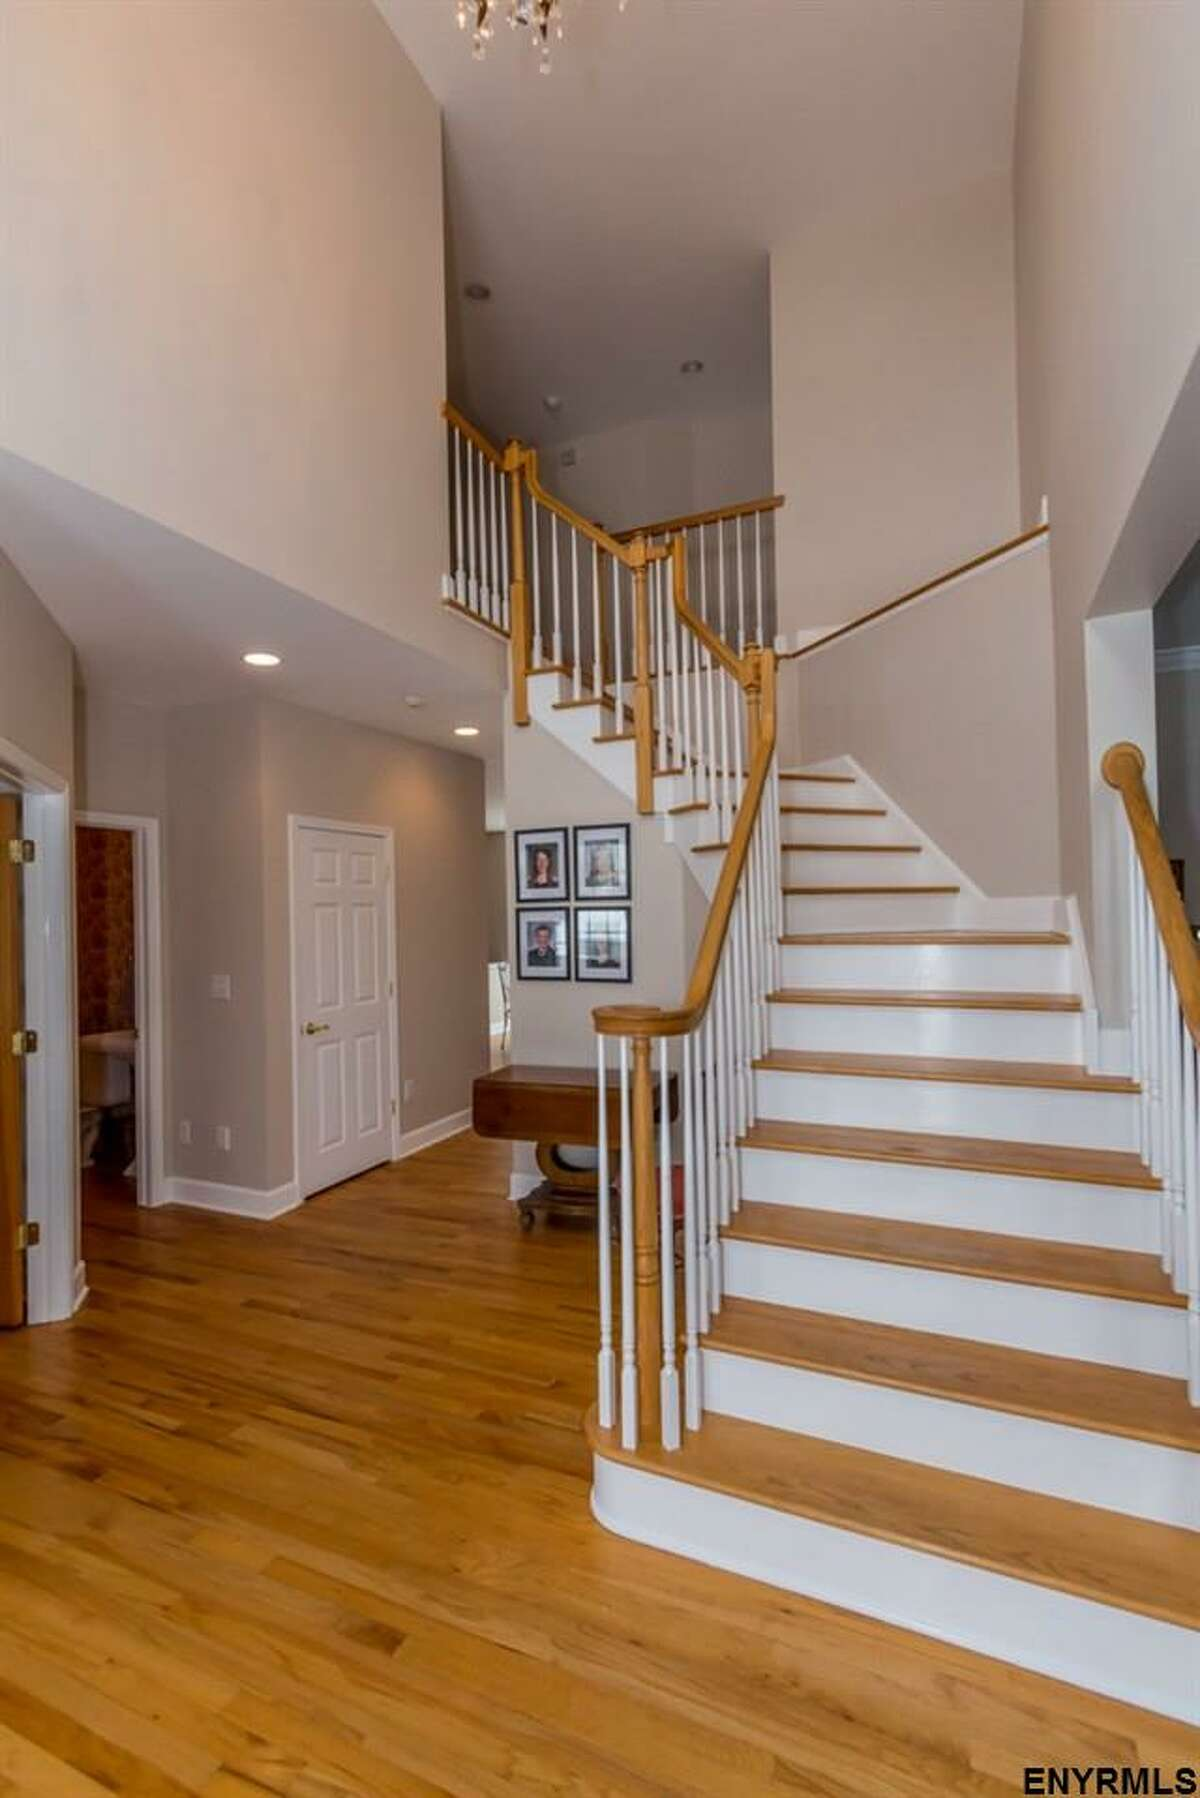 $525,000. 18 Outlook Drive, Halfmoon, 12118. Open Sunday, April 15, 12 p.m. to 2 p.m. View listing